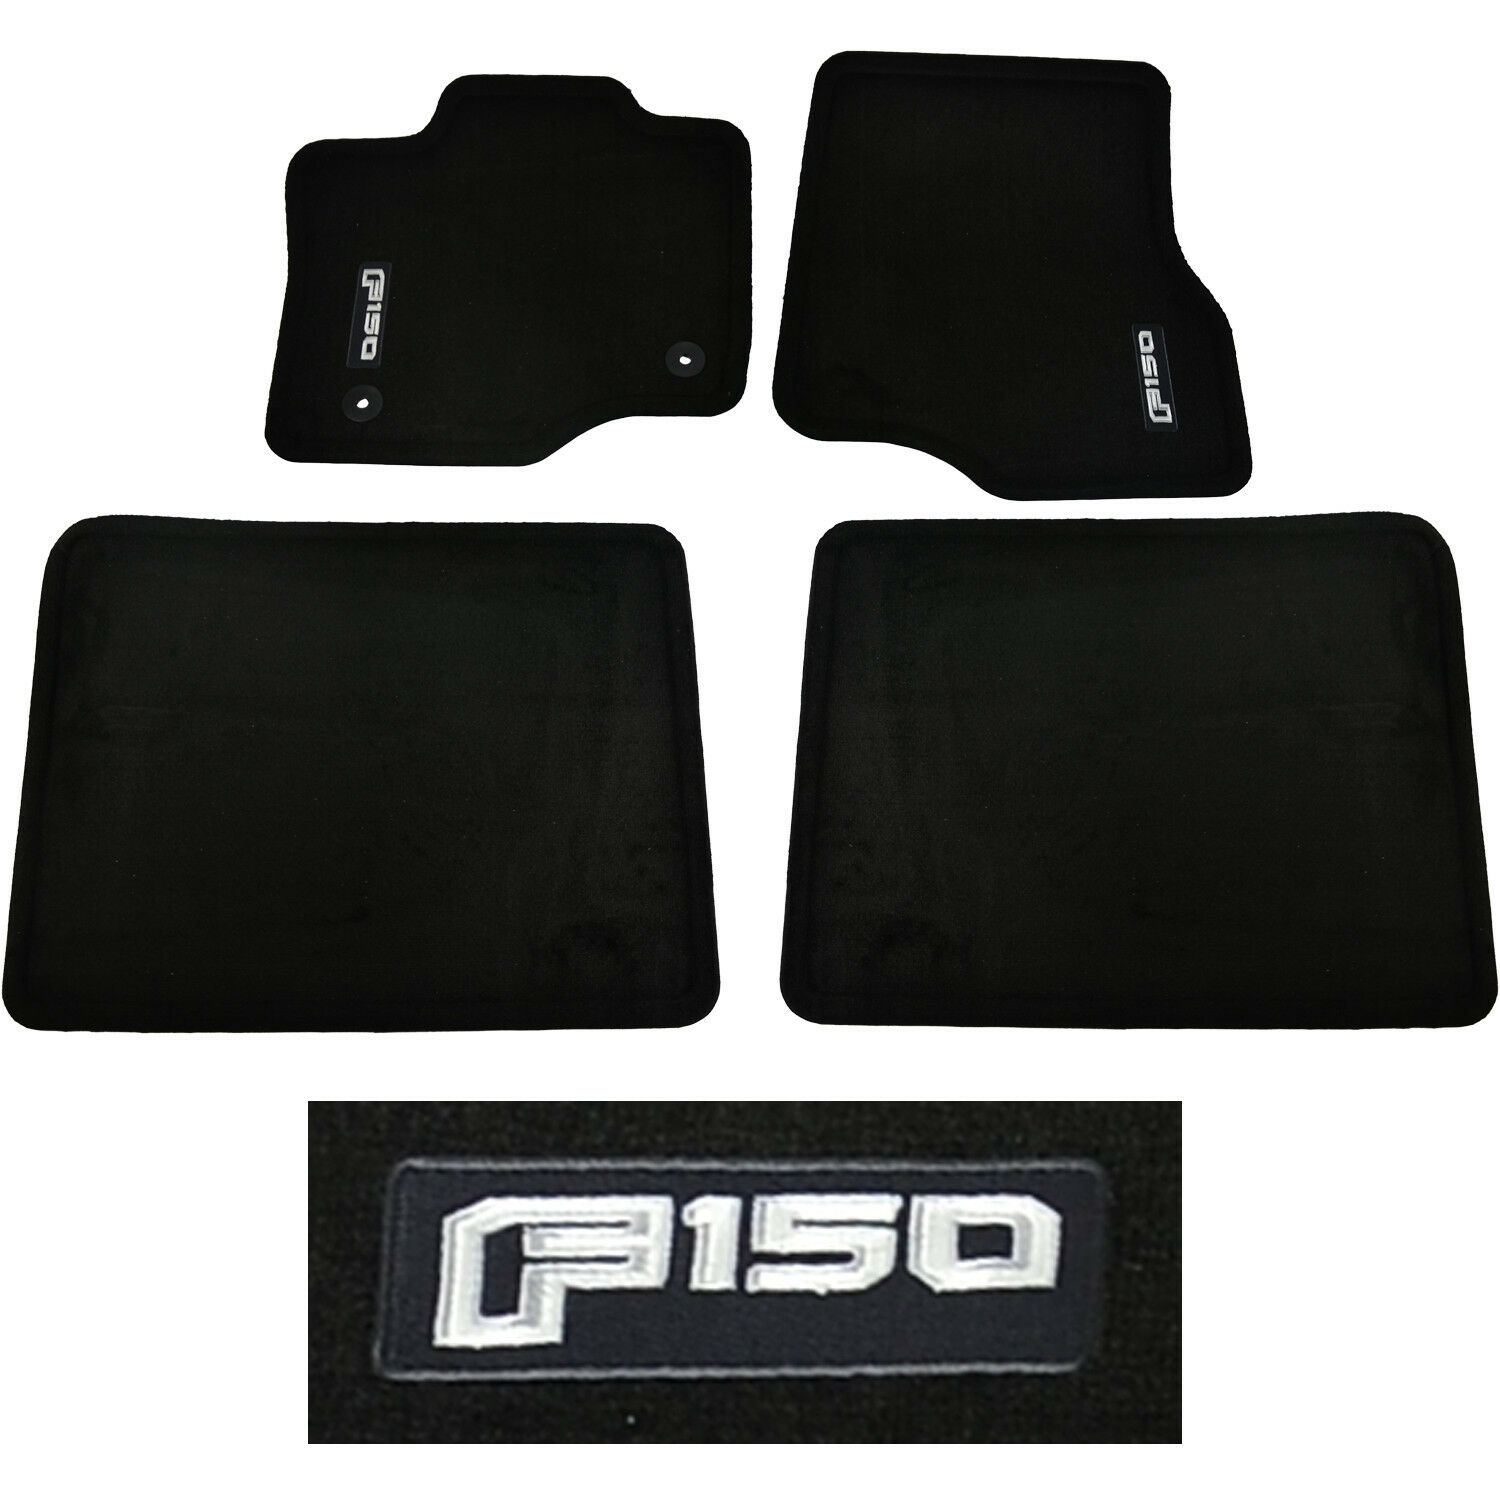 Oem New   Ford F  Crew Cab Carpet Floor Mats Black Embroidered Only  Available See More